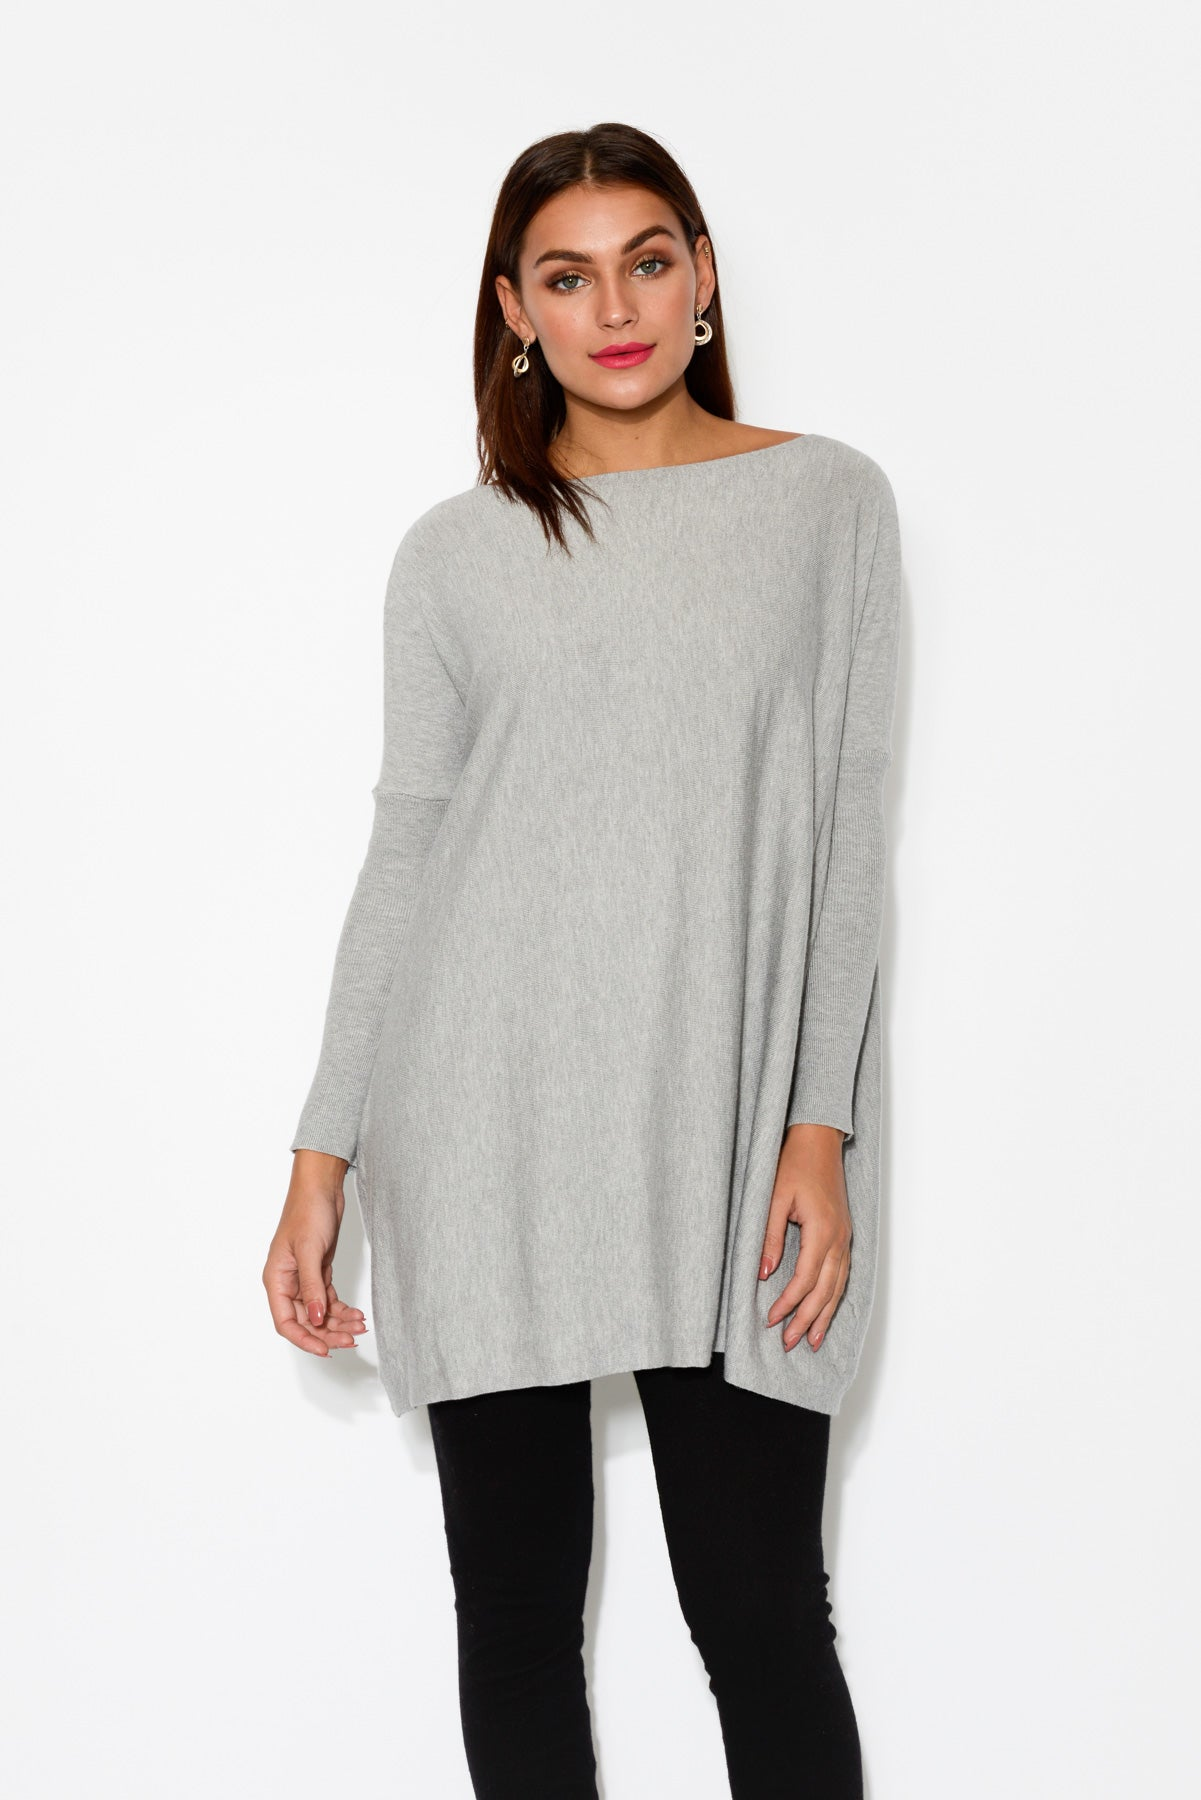 Isy Grey Cotton Oversized Knit - Blue Bungalow